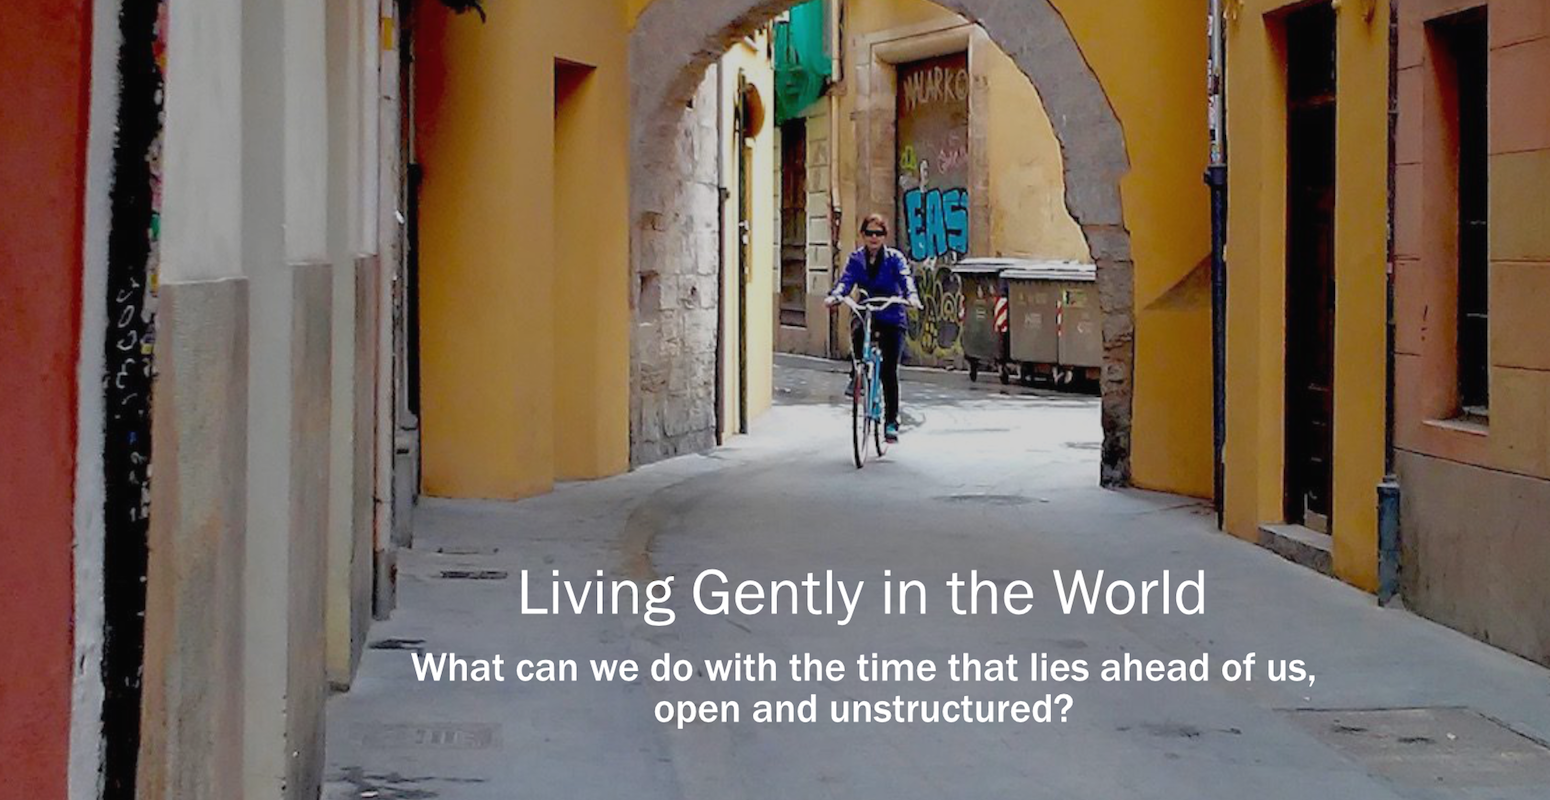 Living Gently in the World. What can we do with the time that lies ahead of us, open and unstructured?